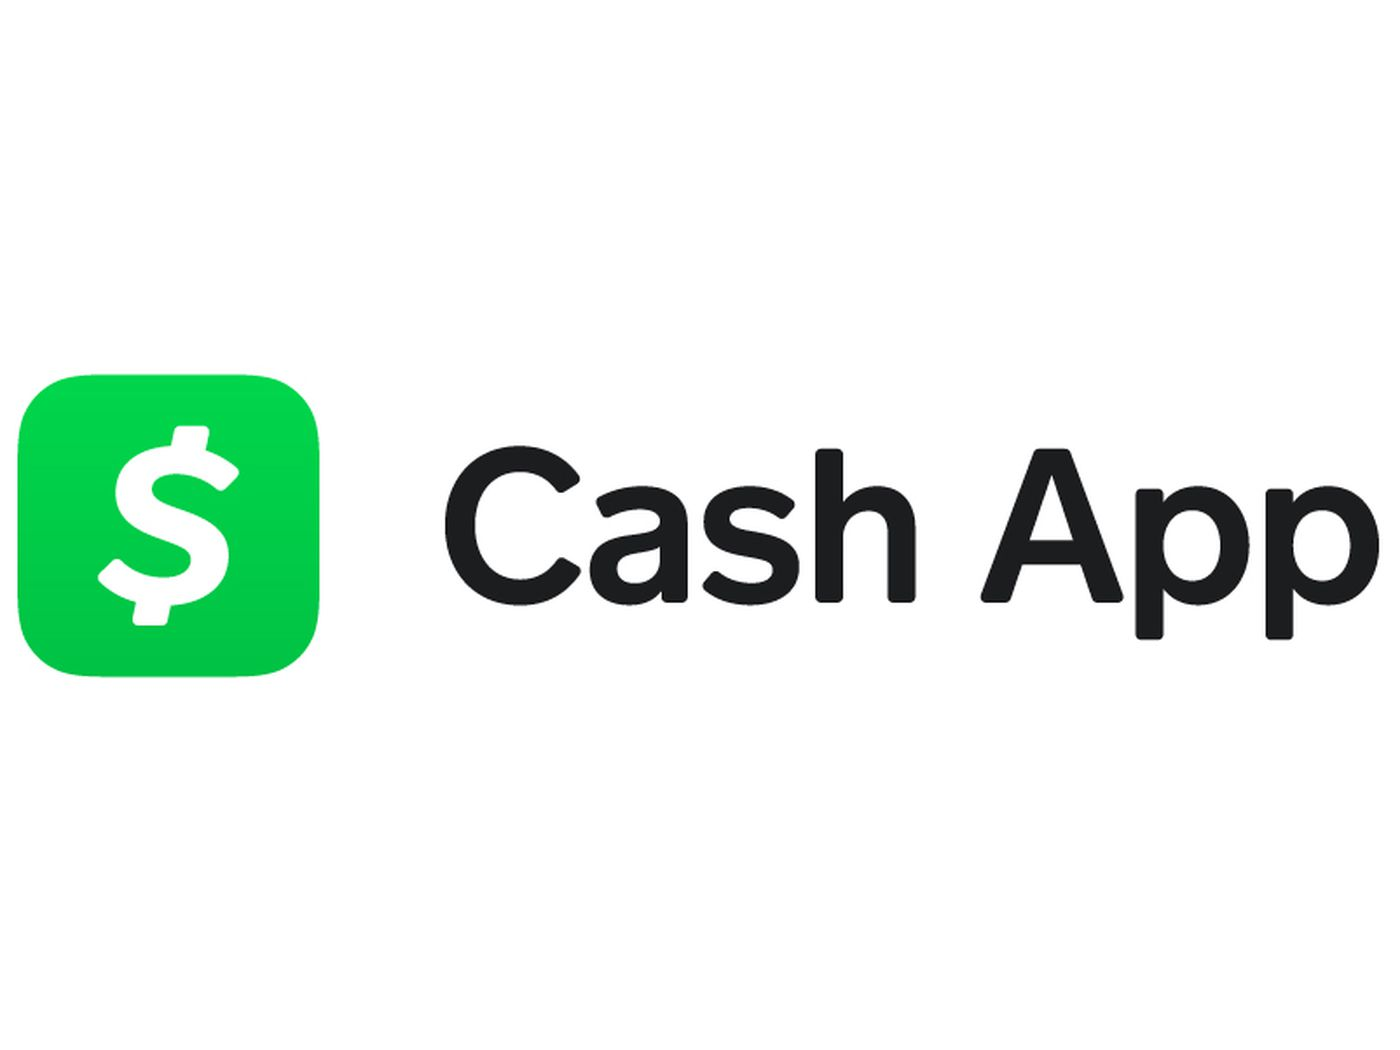 Square S Cash App Details How To Use Its Direct Deposit Feature To Access Stimulus Funds The Verge